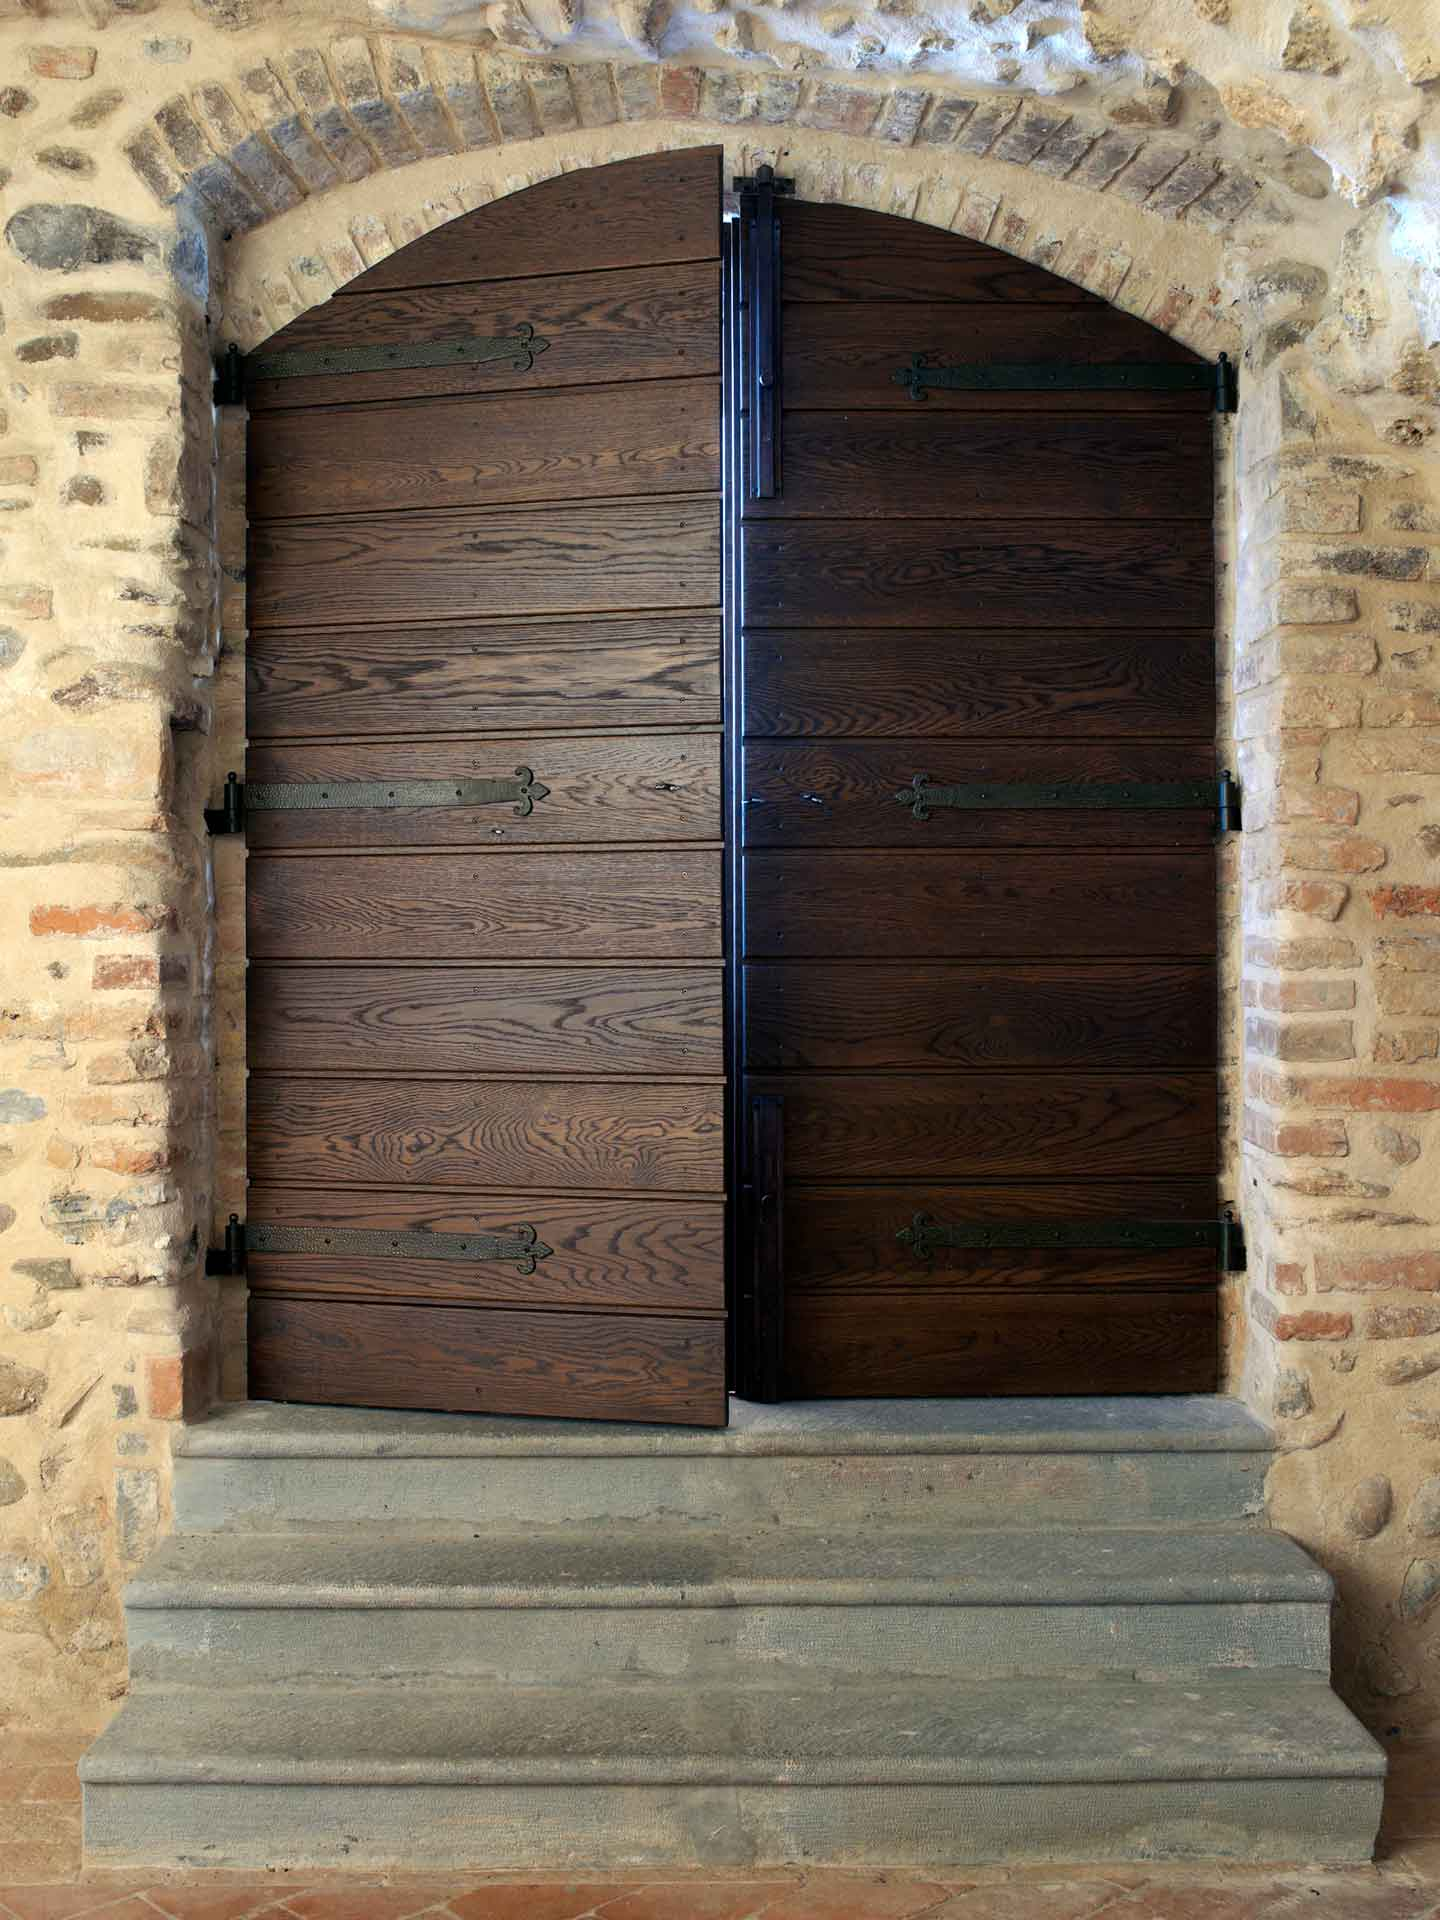 Entrance doors, image a